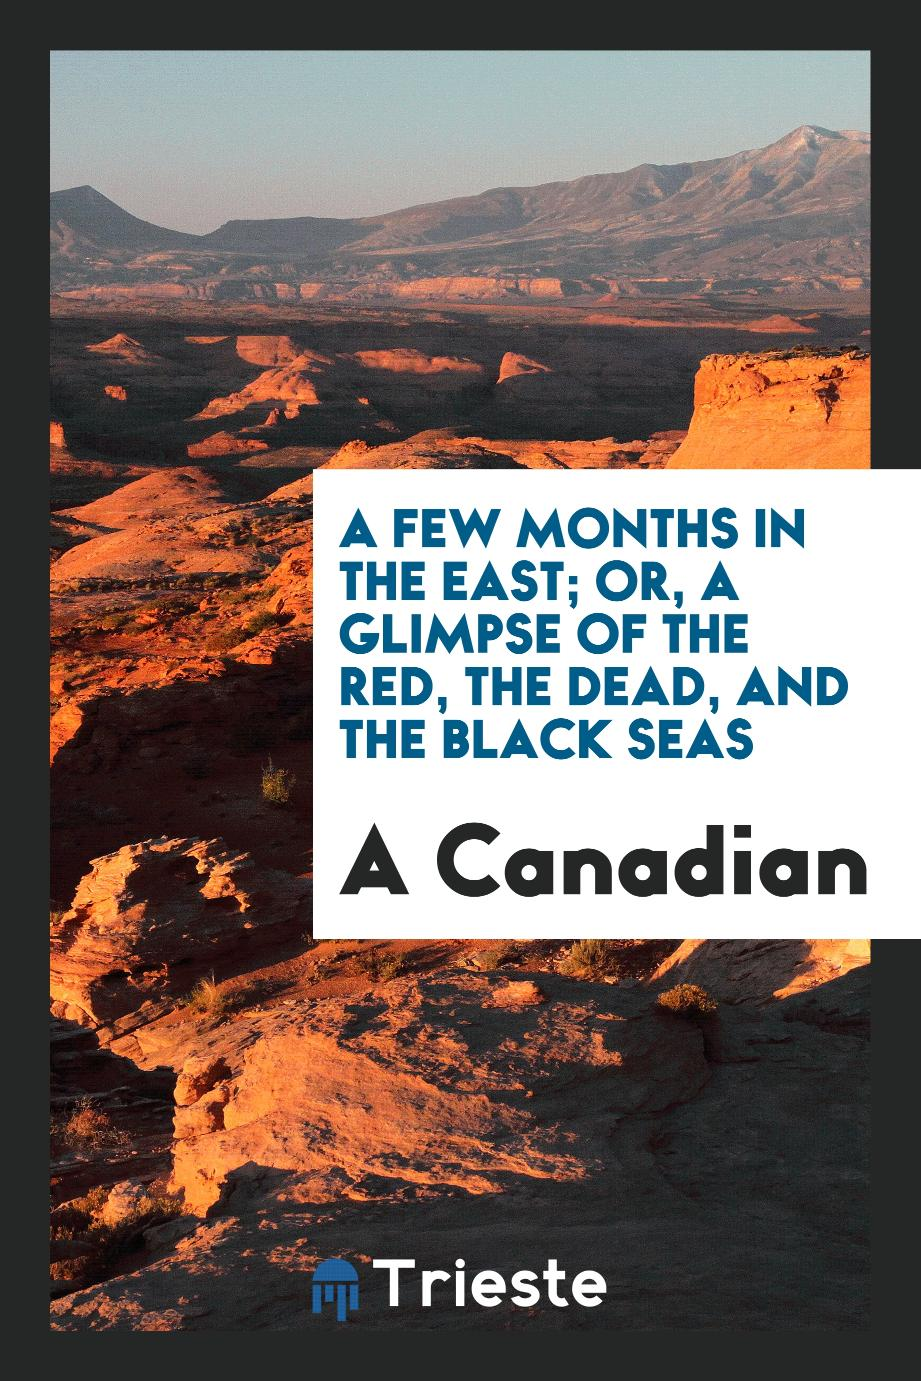 A Few Months in the East; Or, a Glimpse of the Red, the Dead, and the Black Seas